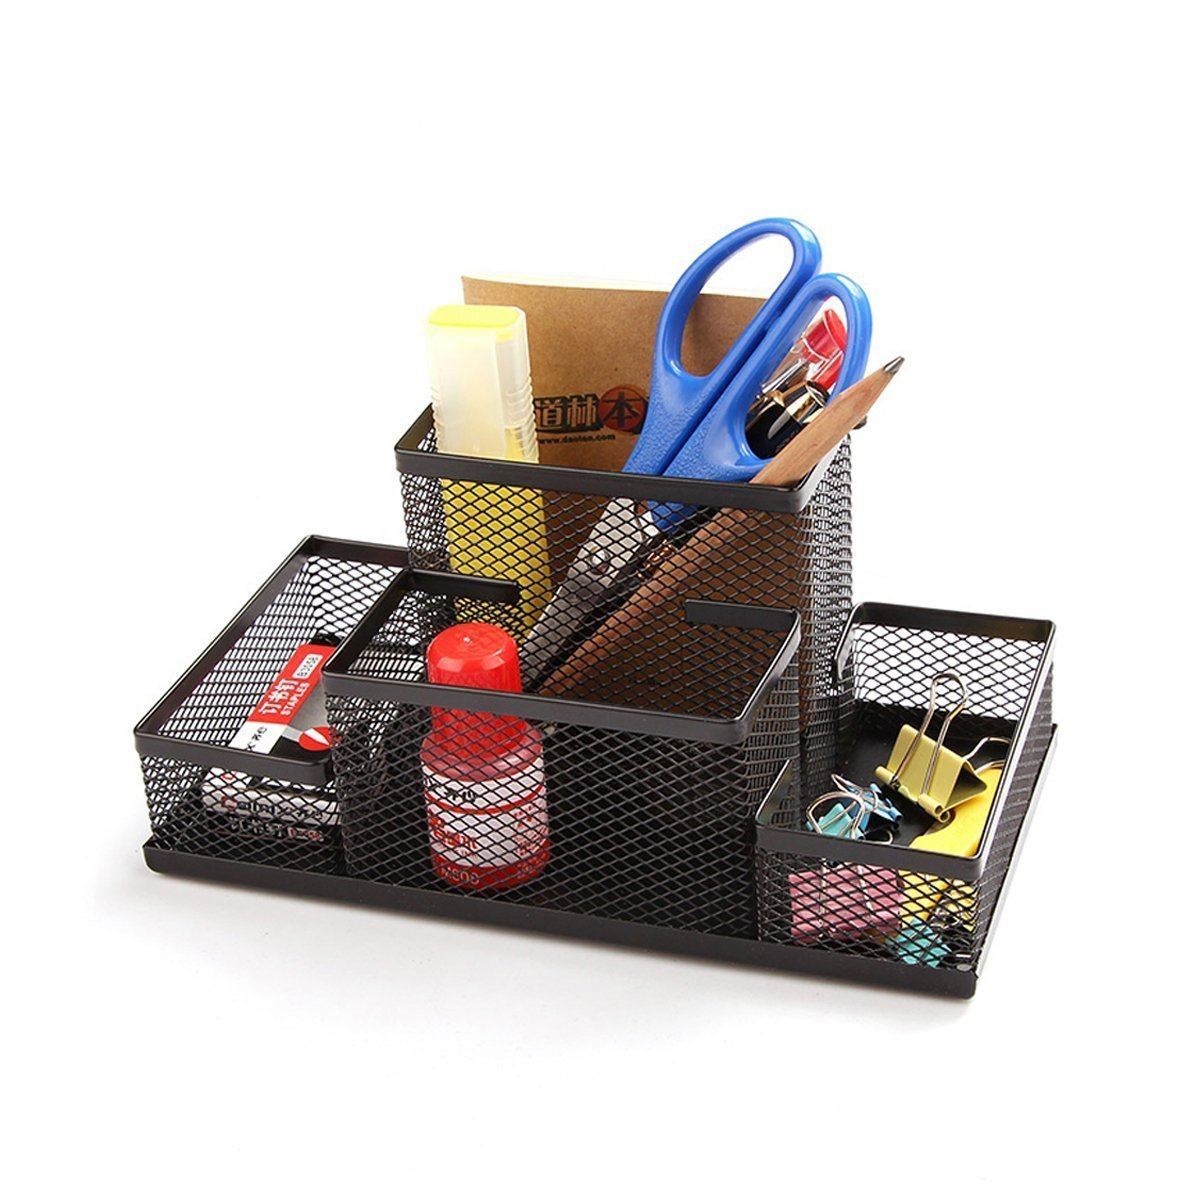 Pen and stationary organizer